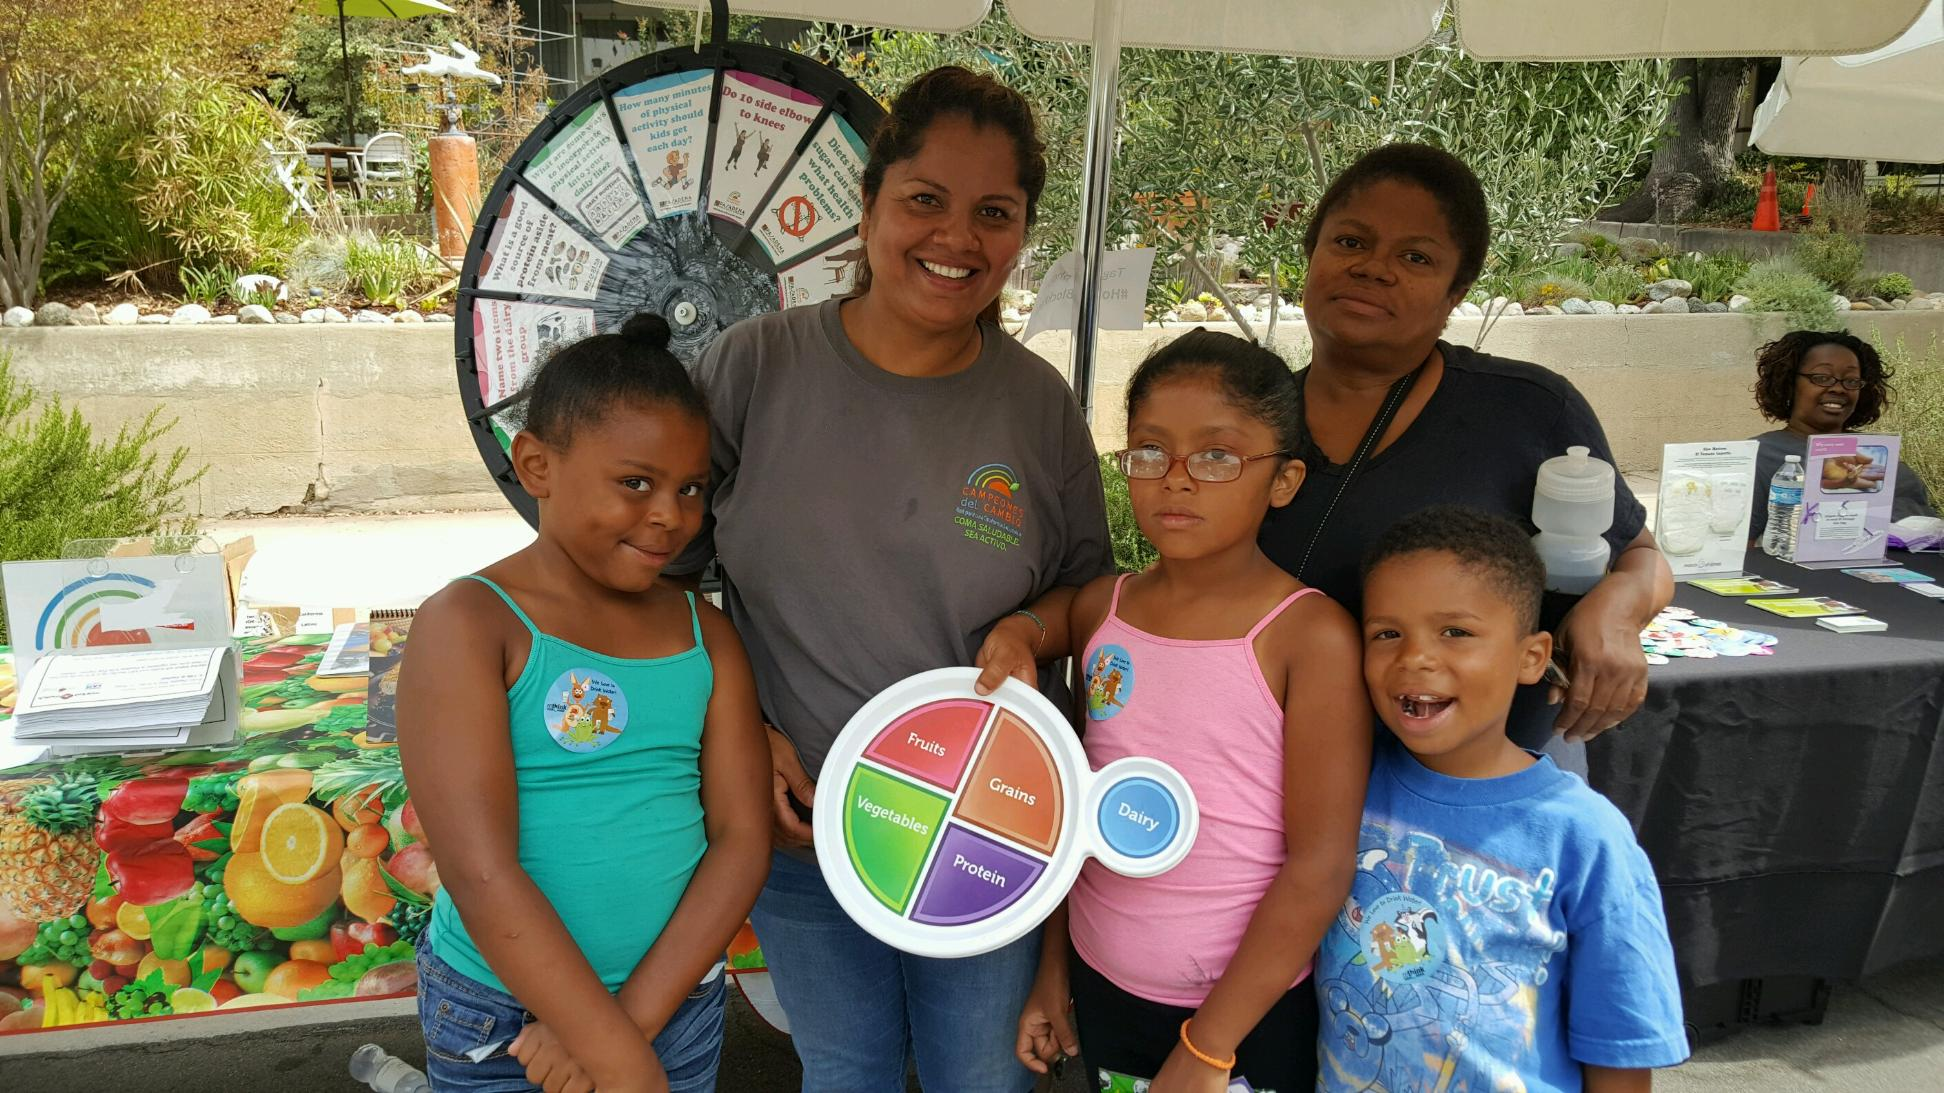 Two women and three children in front of factoid wheel